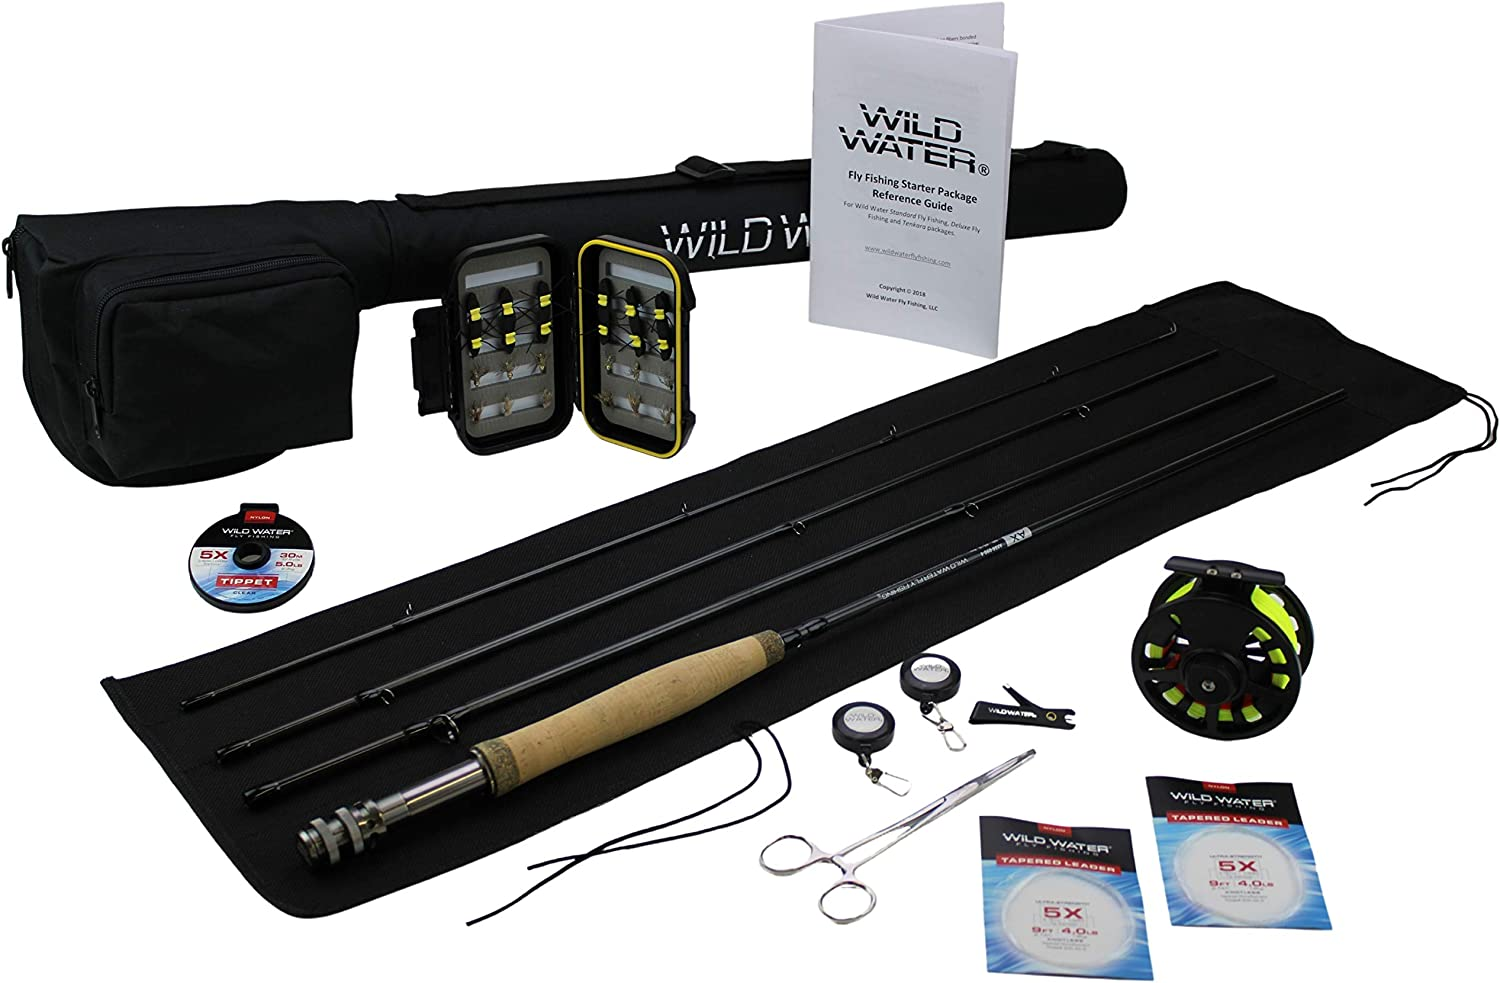 Wild Water Fly Fishing Max New life 48% OFF Deluxe 5 Weight Fishi 8 Piece 4 Foot